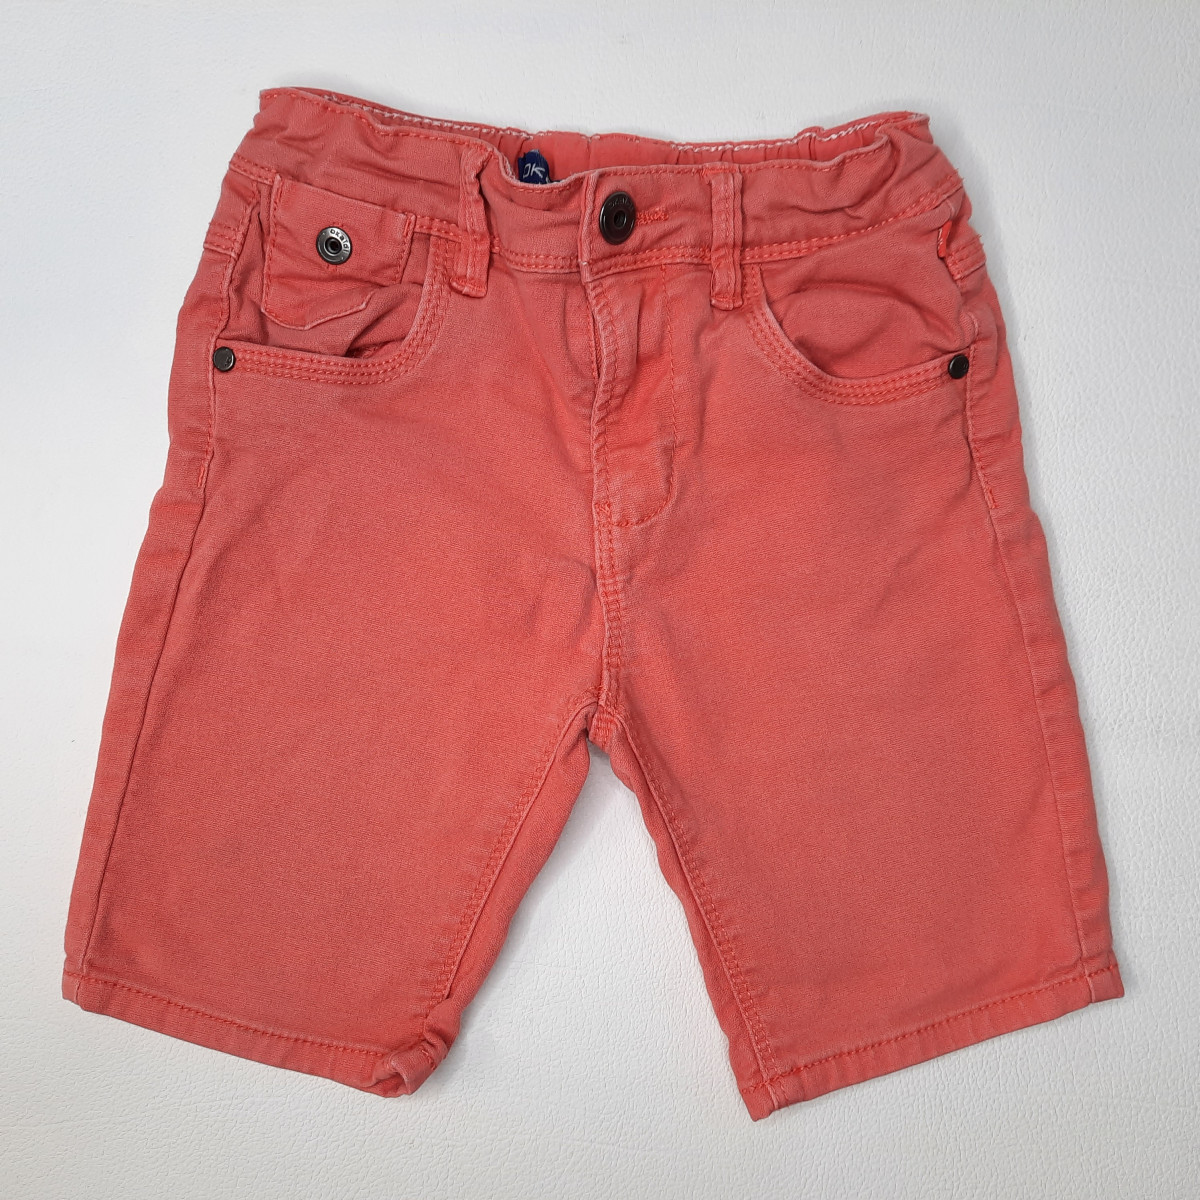 Shorts, Bermudas - photo 21